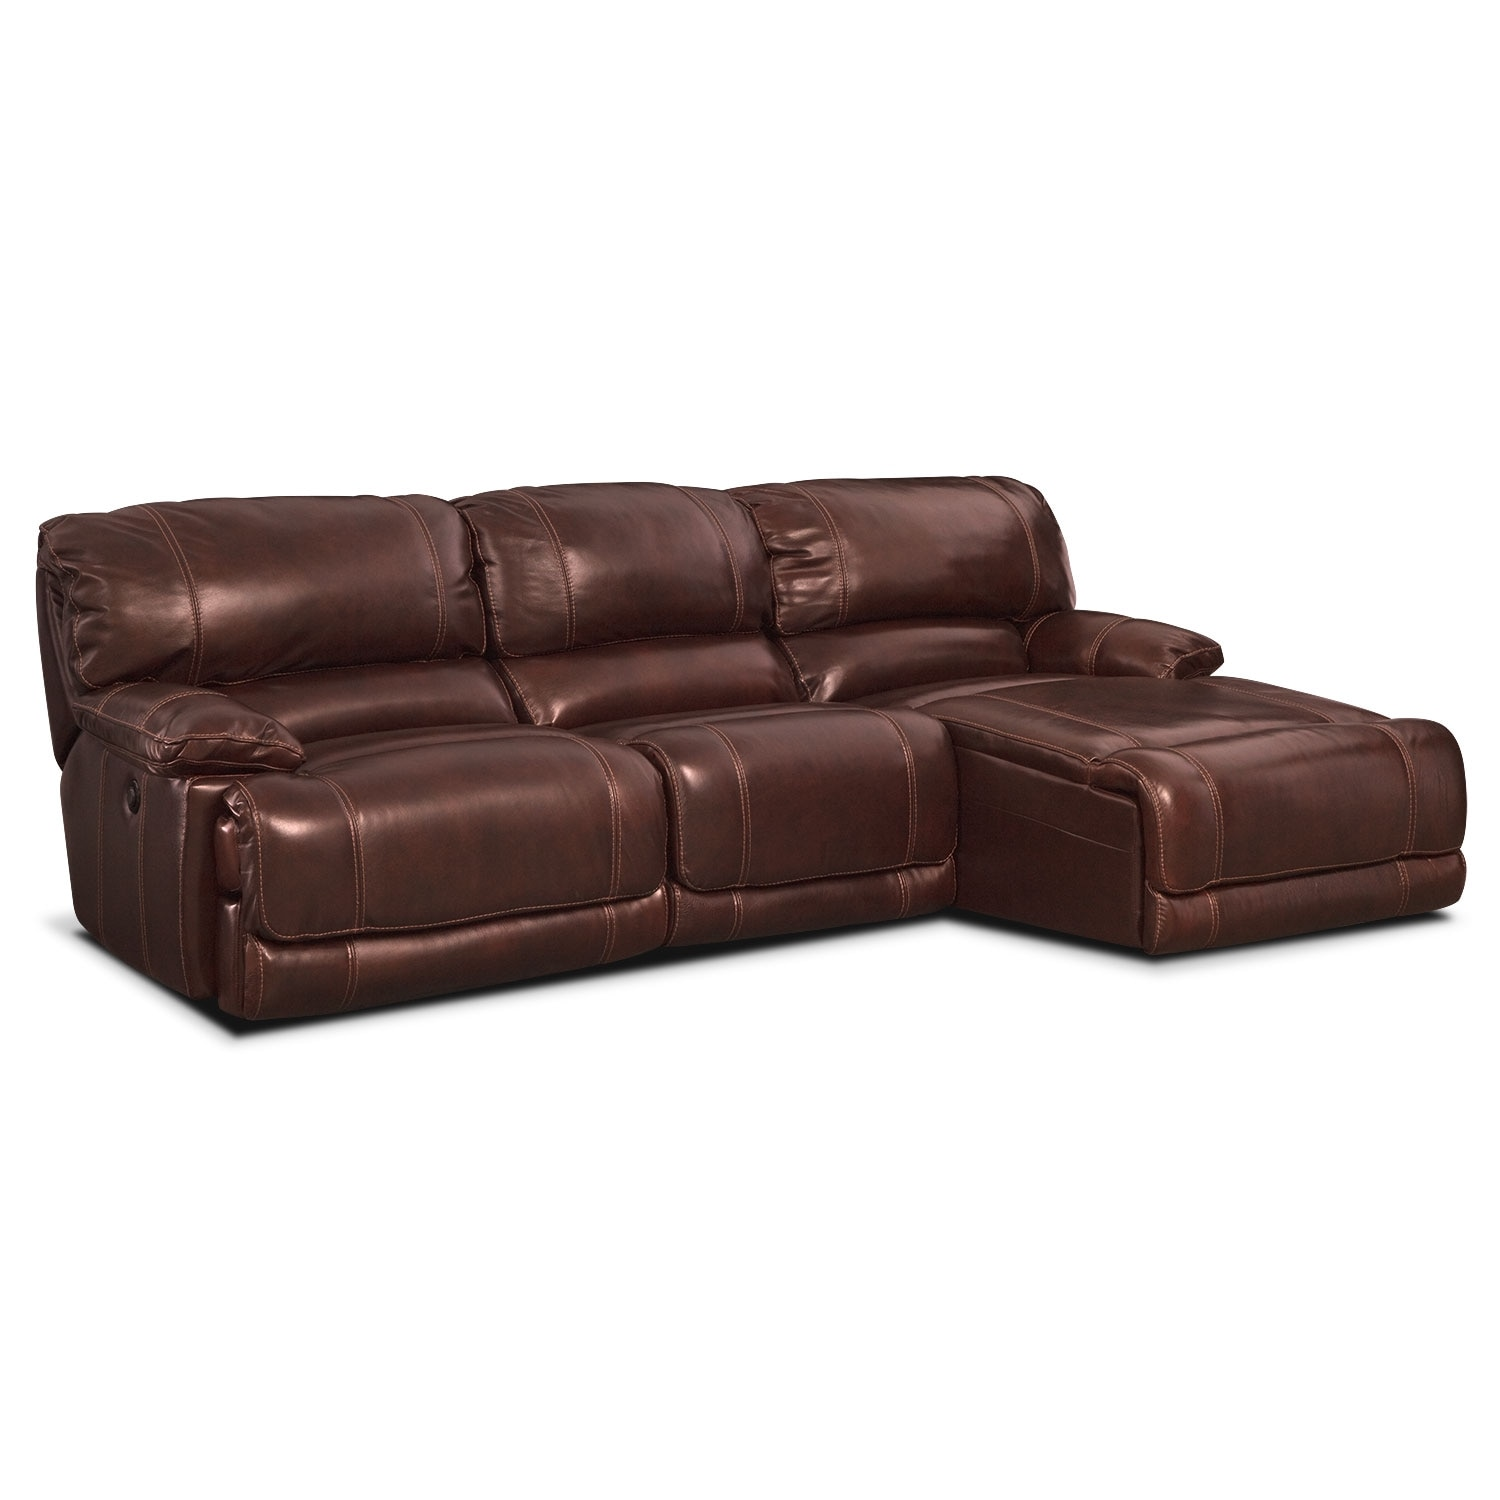 St. Malo 3-Piece Power Reclining Sectional with  Right-Facing Chaise - Burgundy